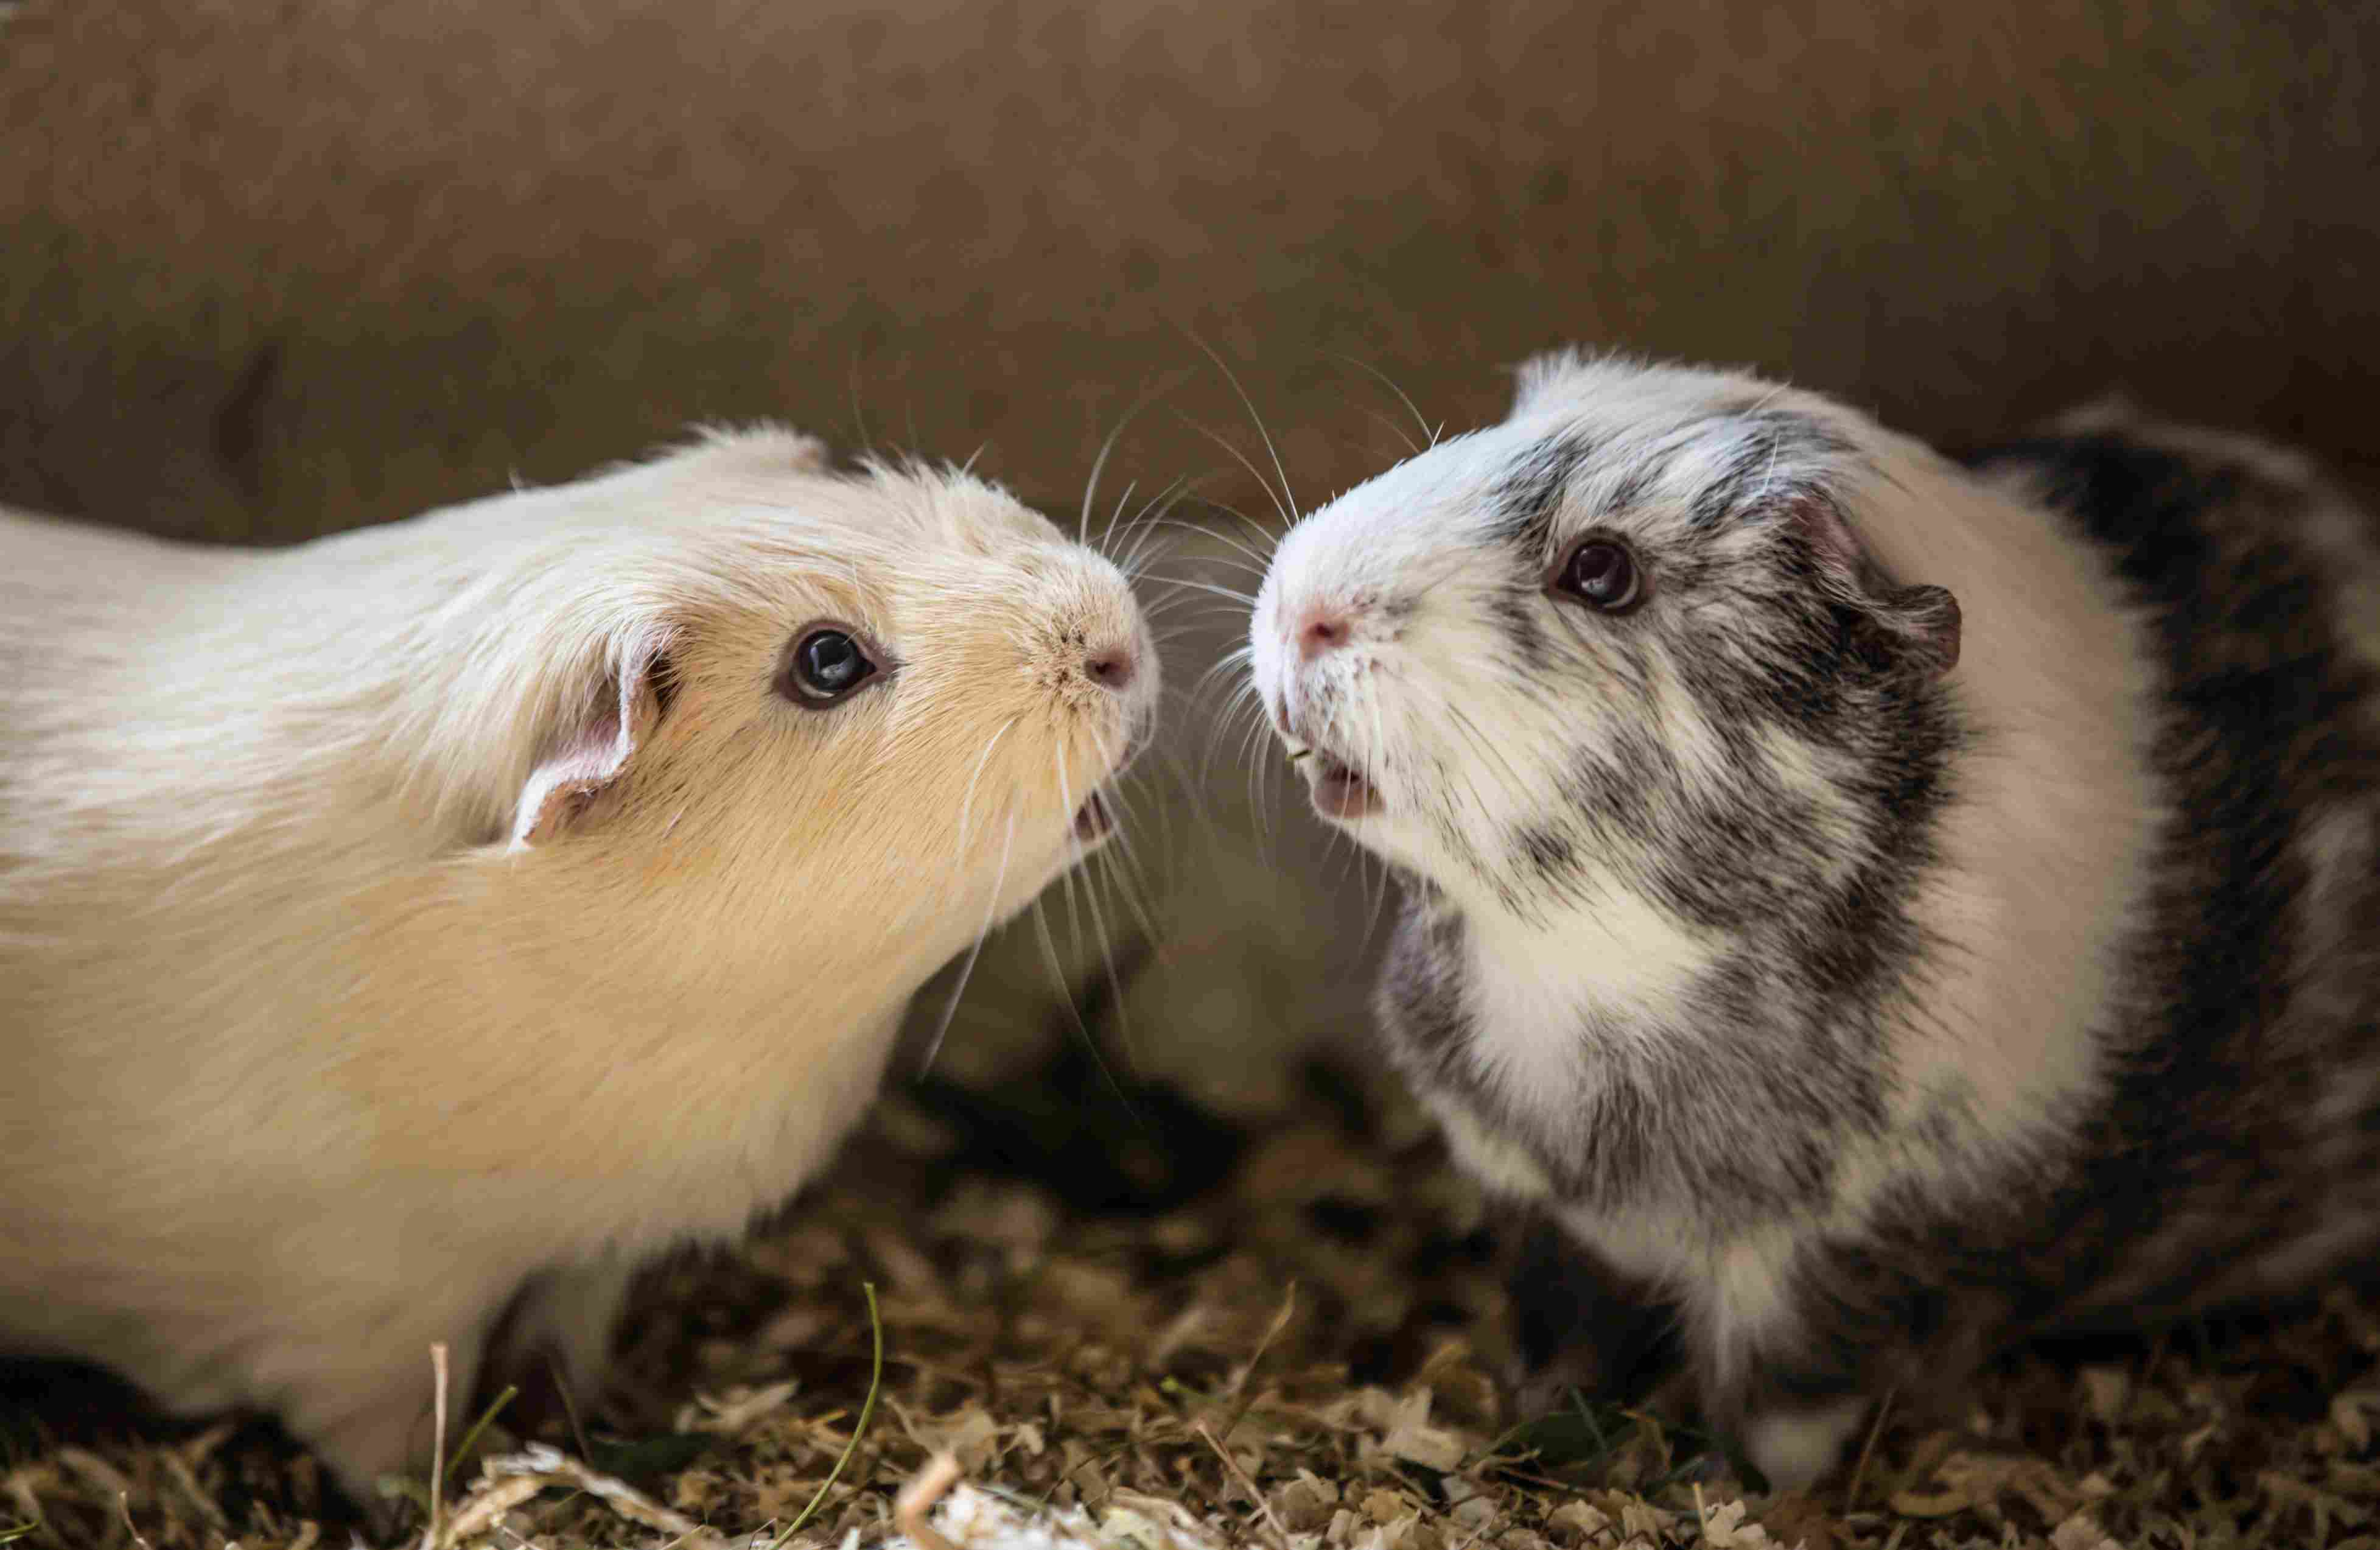 Close-Up Of Guinea Pigs At Home